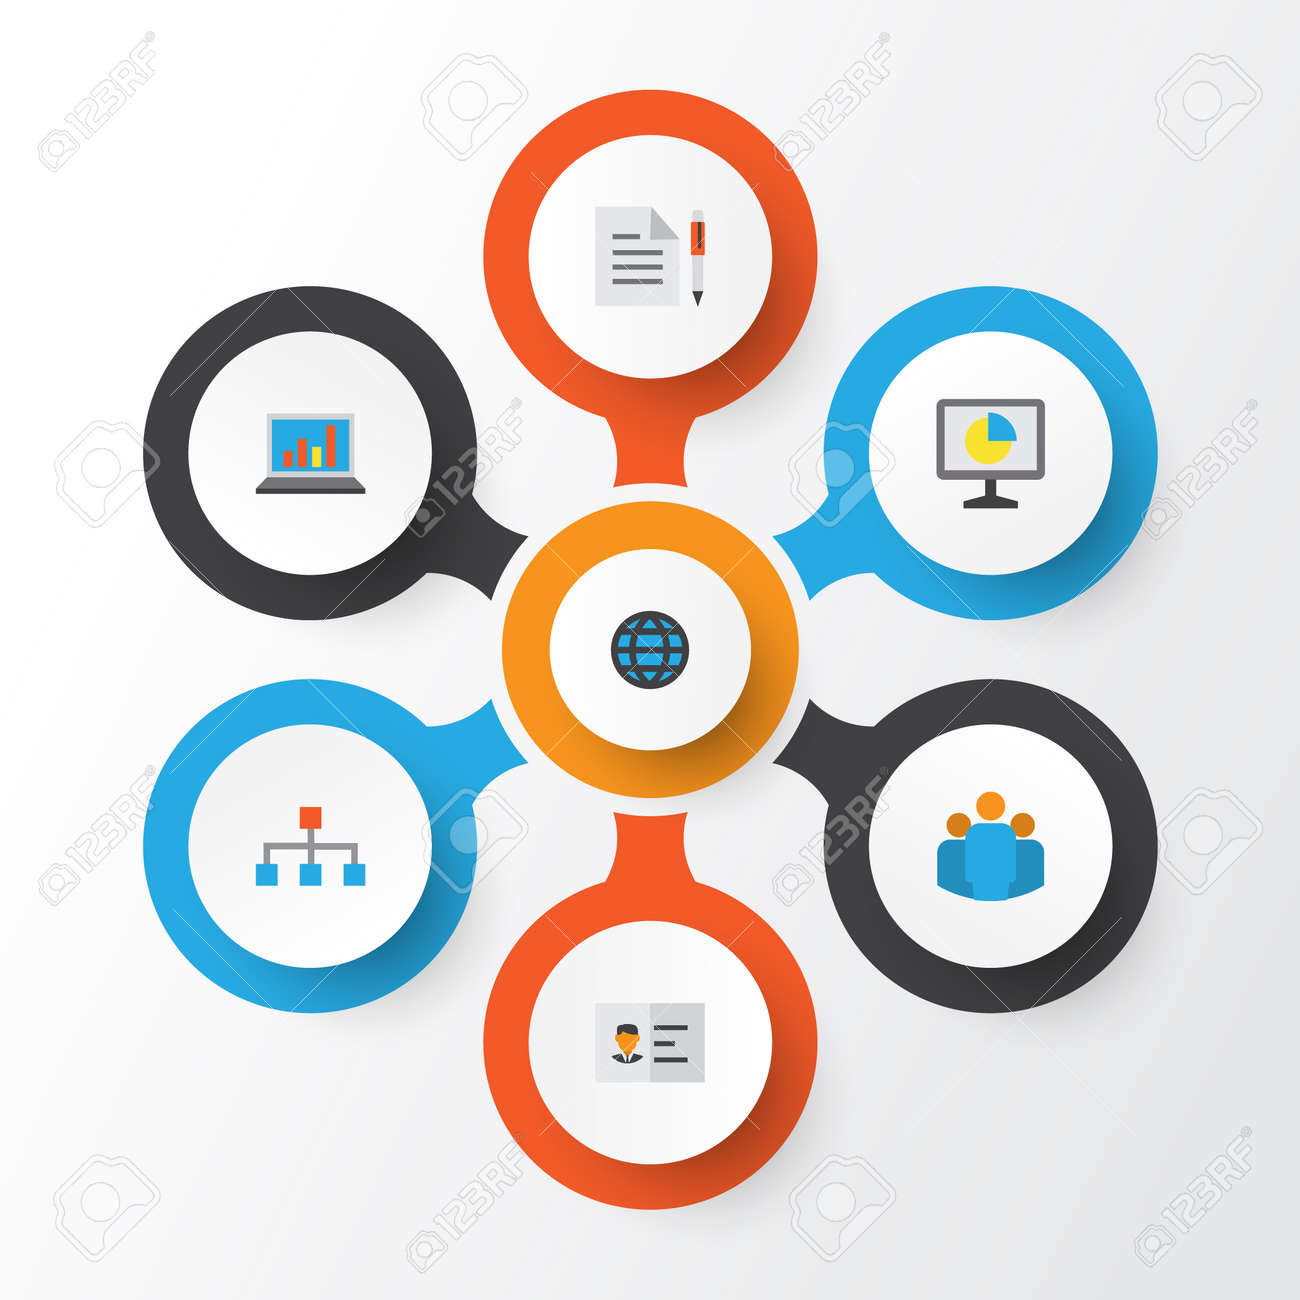 Job flat icons set collection of statistics hierarchy diagram job flat icons set collection of statistics hierarchy diagram and other elements ccuart Image collections